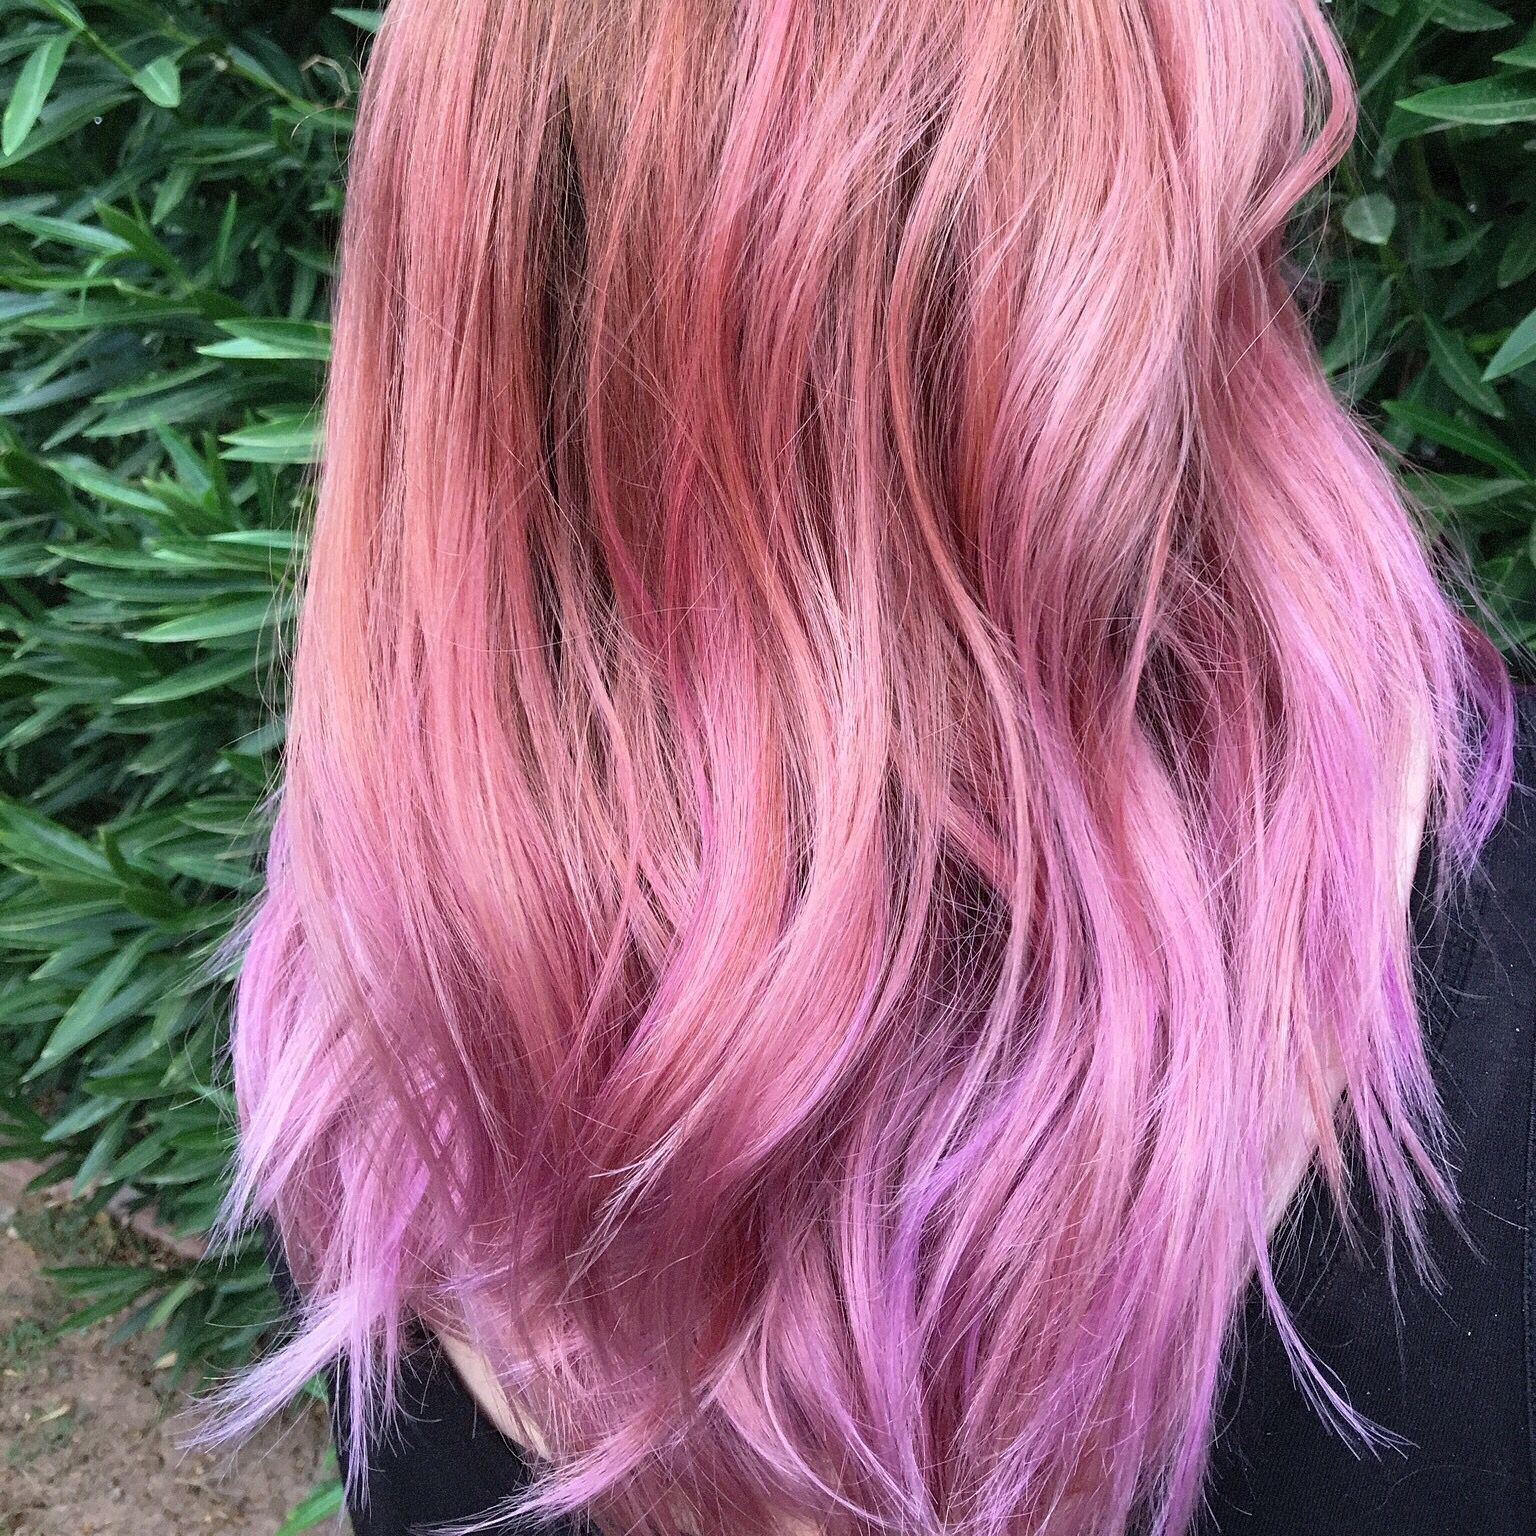 Joico hair color tags color jocio joico - Pastel Rose And Lavender Hair Using Joico Color Intensity